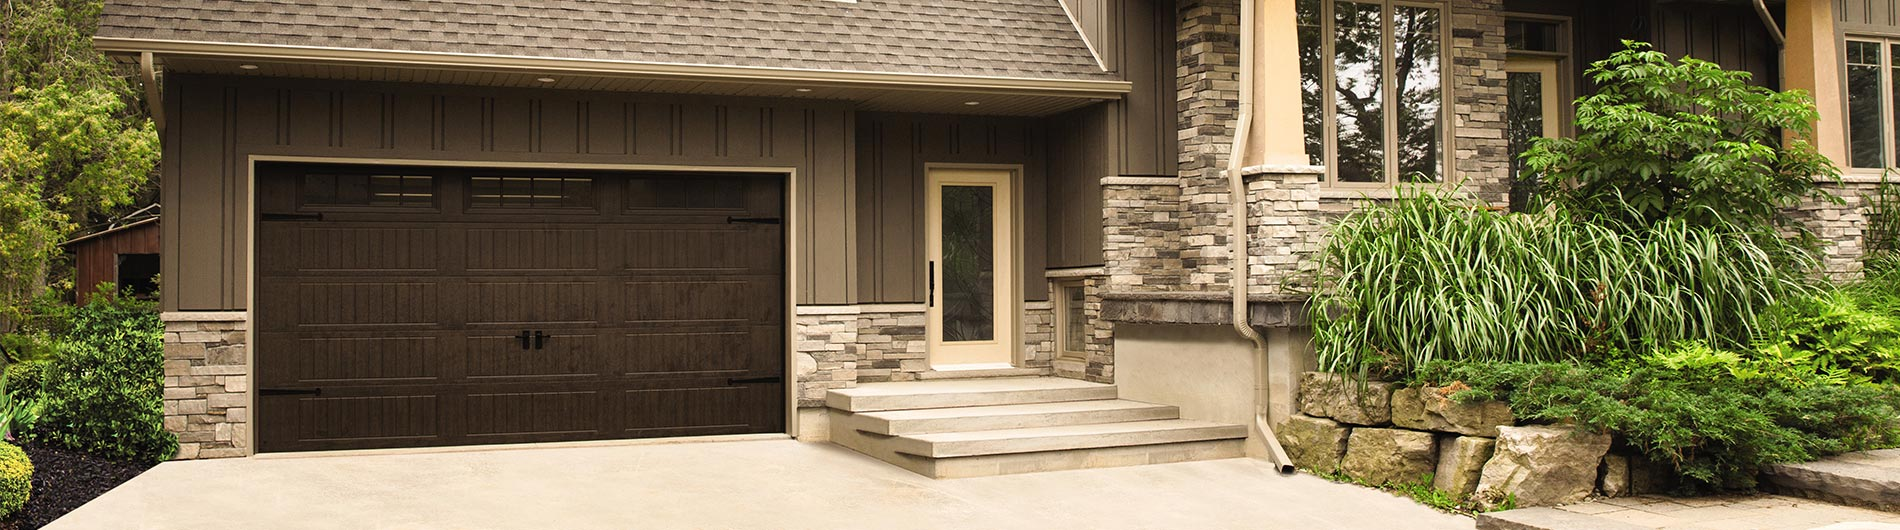 Steel garage door - mission oak